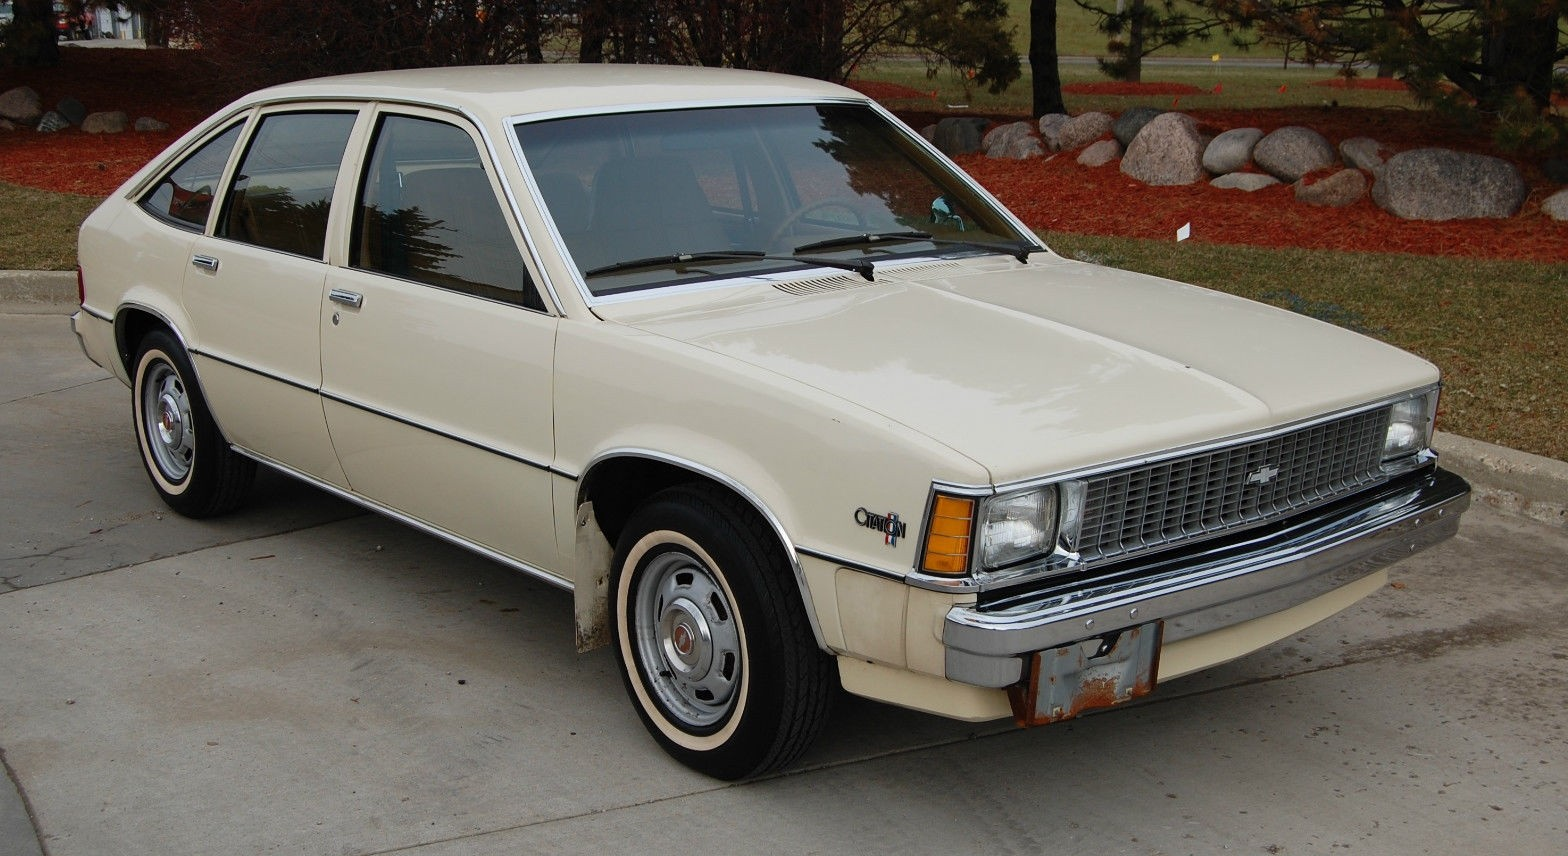 Lovable Loser 1980 Chevy Citation